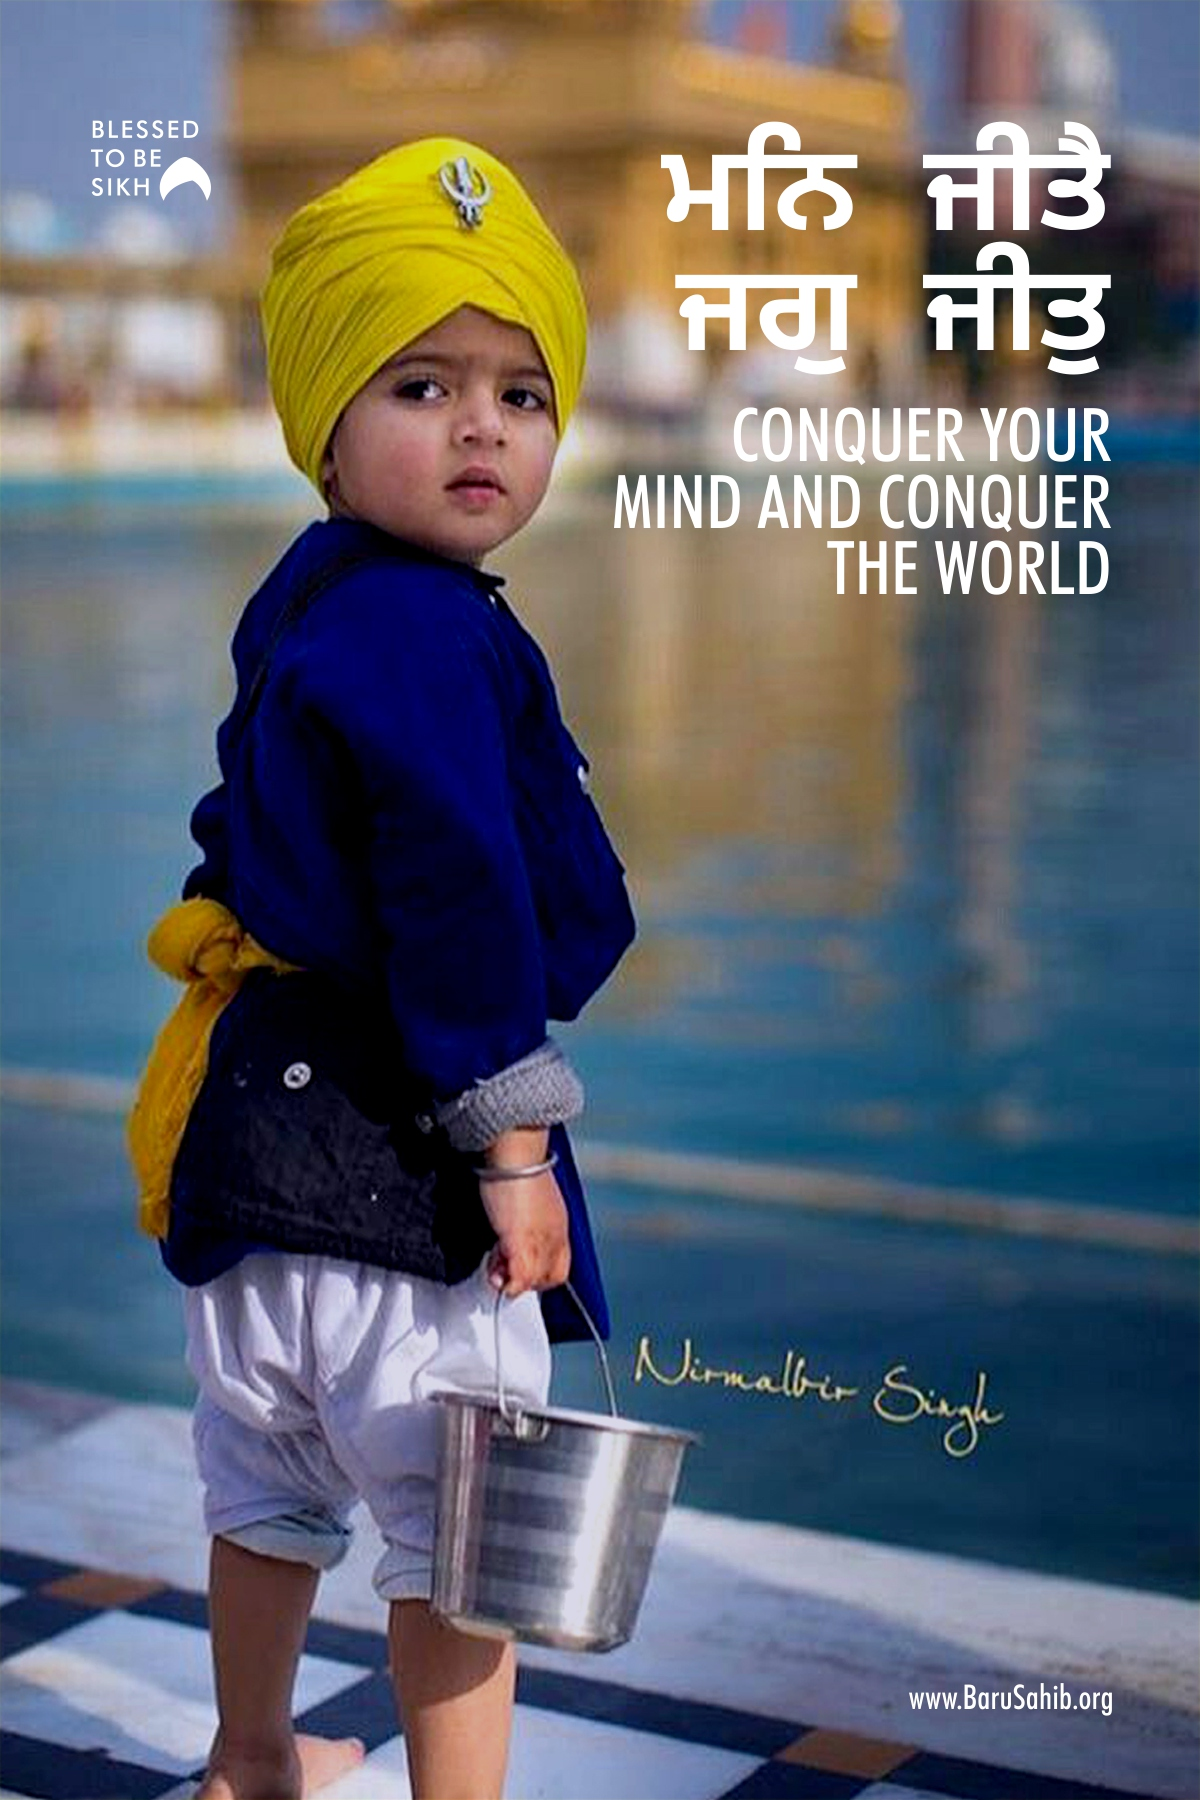 Man Jeete Jag Jeet Conquer your mind and conquer the World - Ramneet